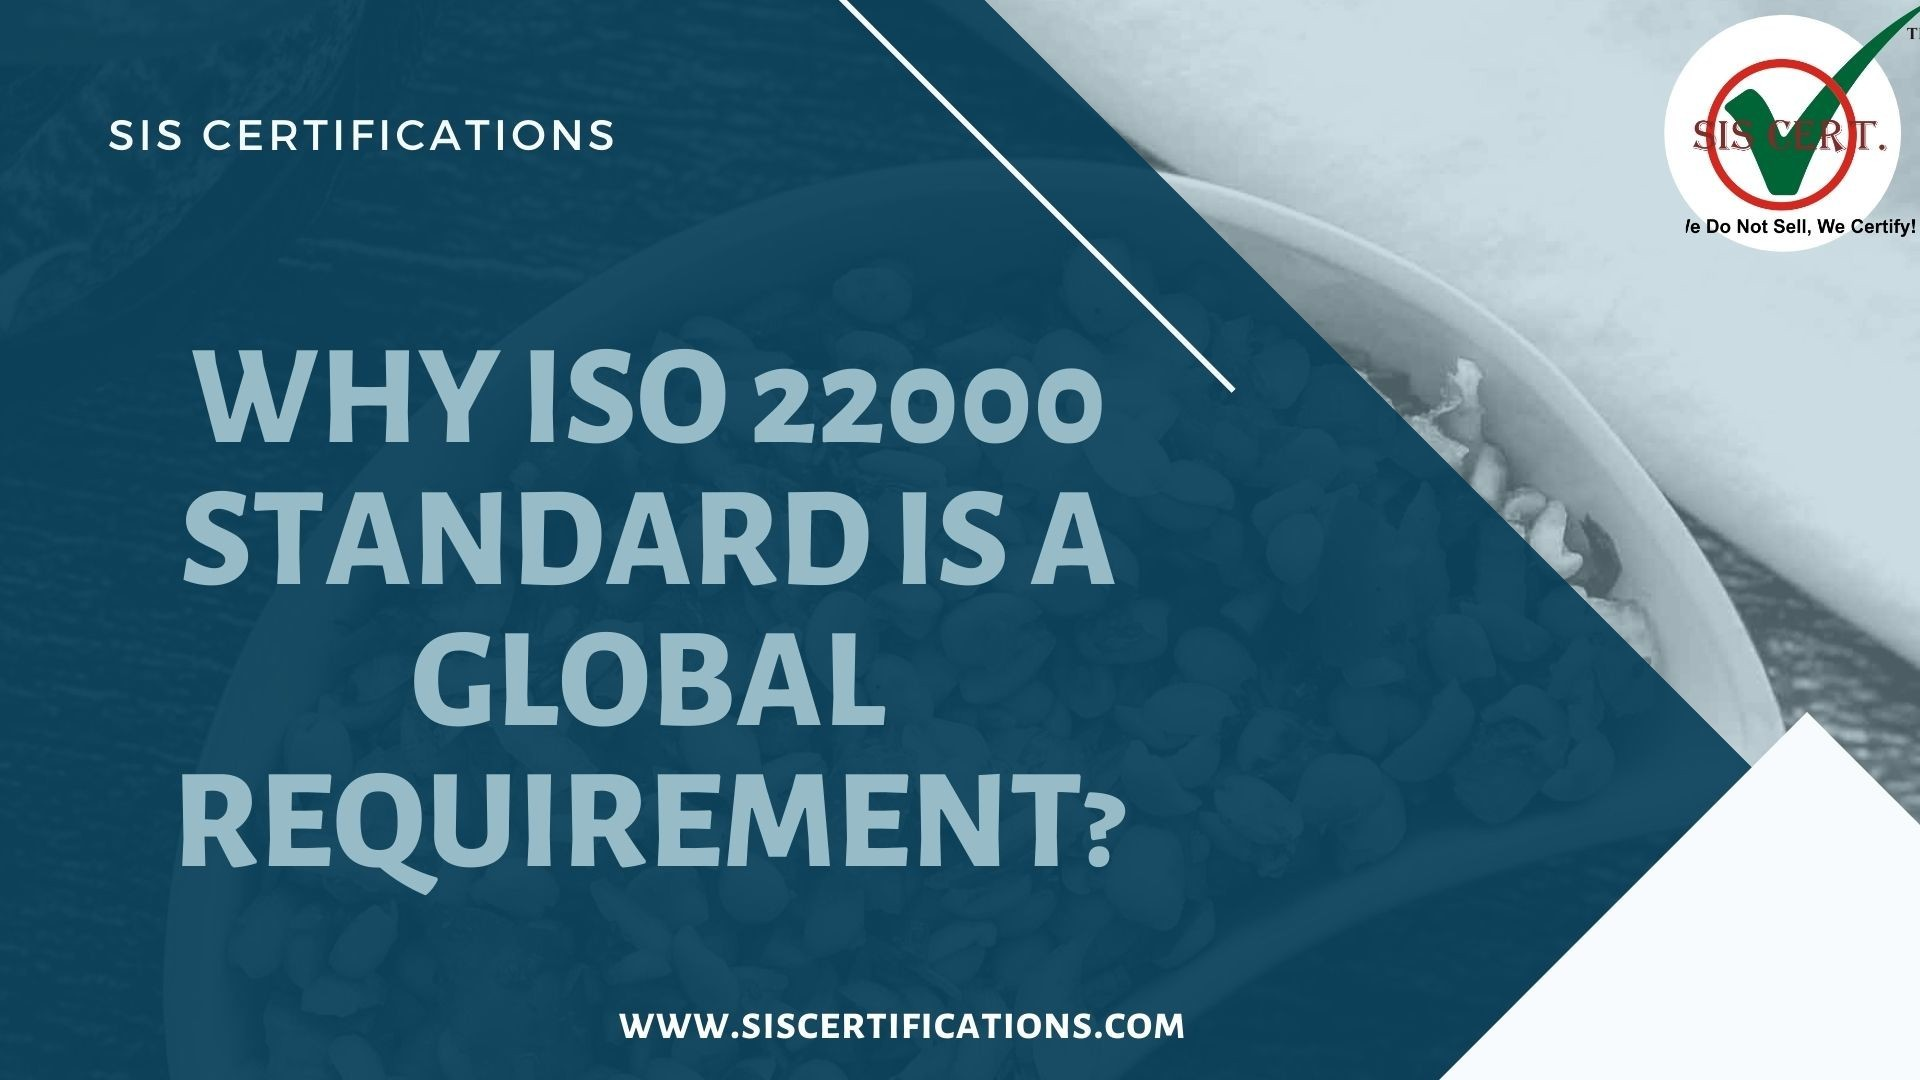 Why ISO 22000 Standard is a Global Requirement?